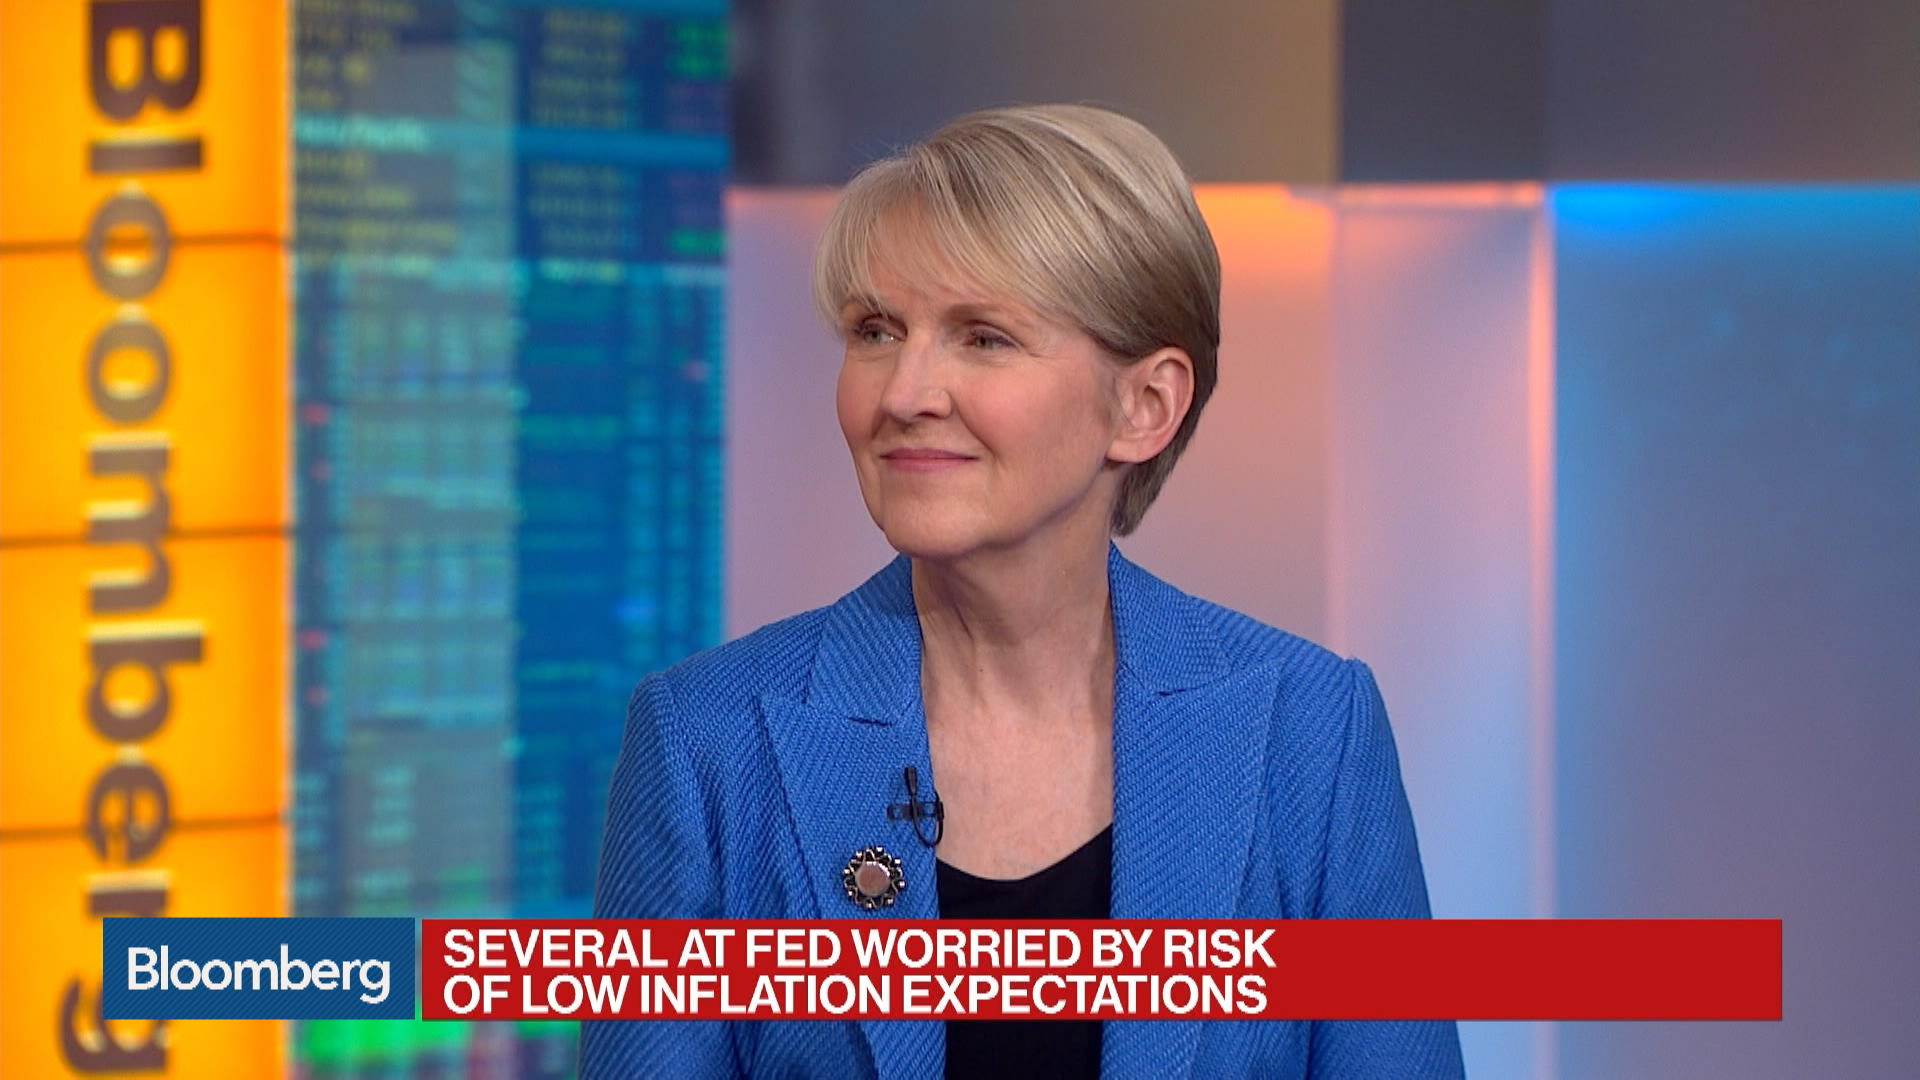 FOMC Minutes Show Fed Will Be Neutral for 'Some Time,' Bernstein's Fisher Says